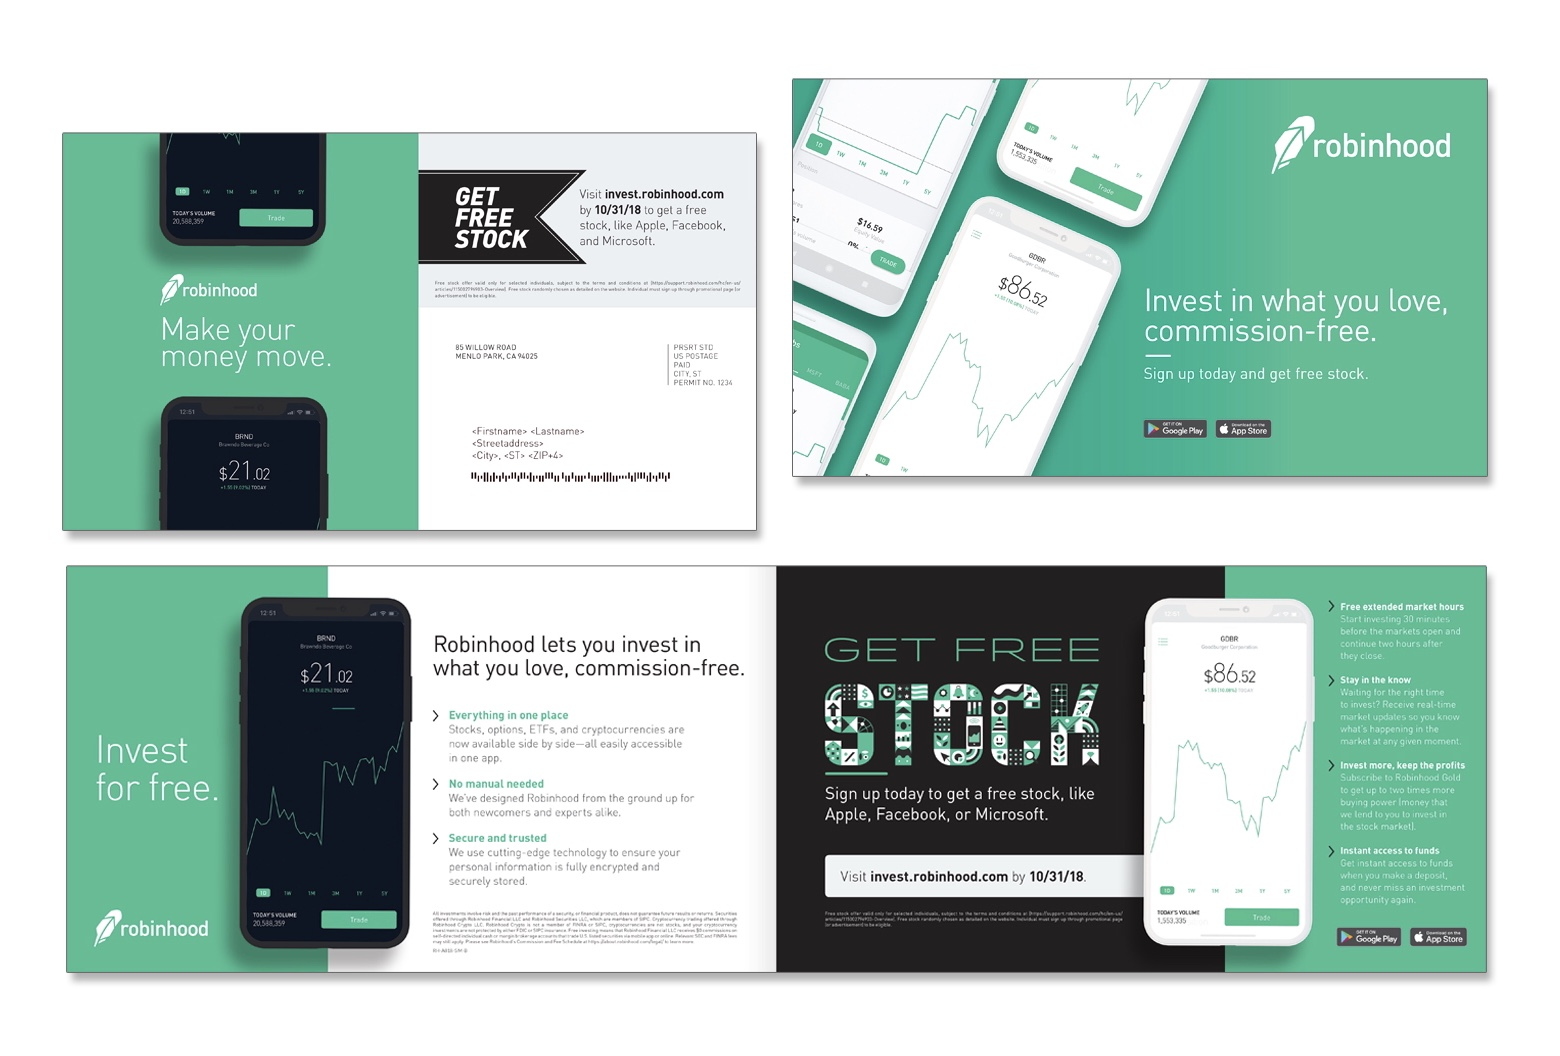 You now have a claim to a stock like Apple, Ford, or Facebook. In order to keep this claim to your stock, sign up and join Robinhood using my link!